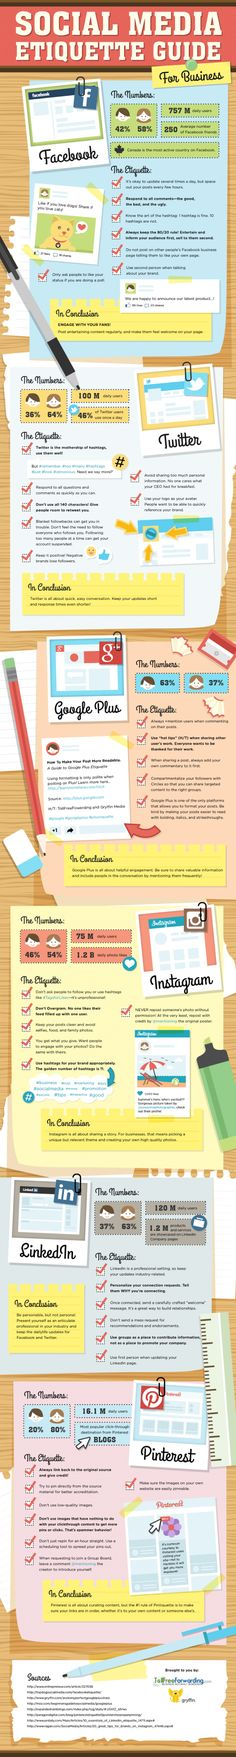 Social media etiquette: do's en don'ts [infographic] - Frankwatching